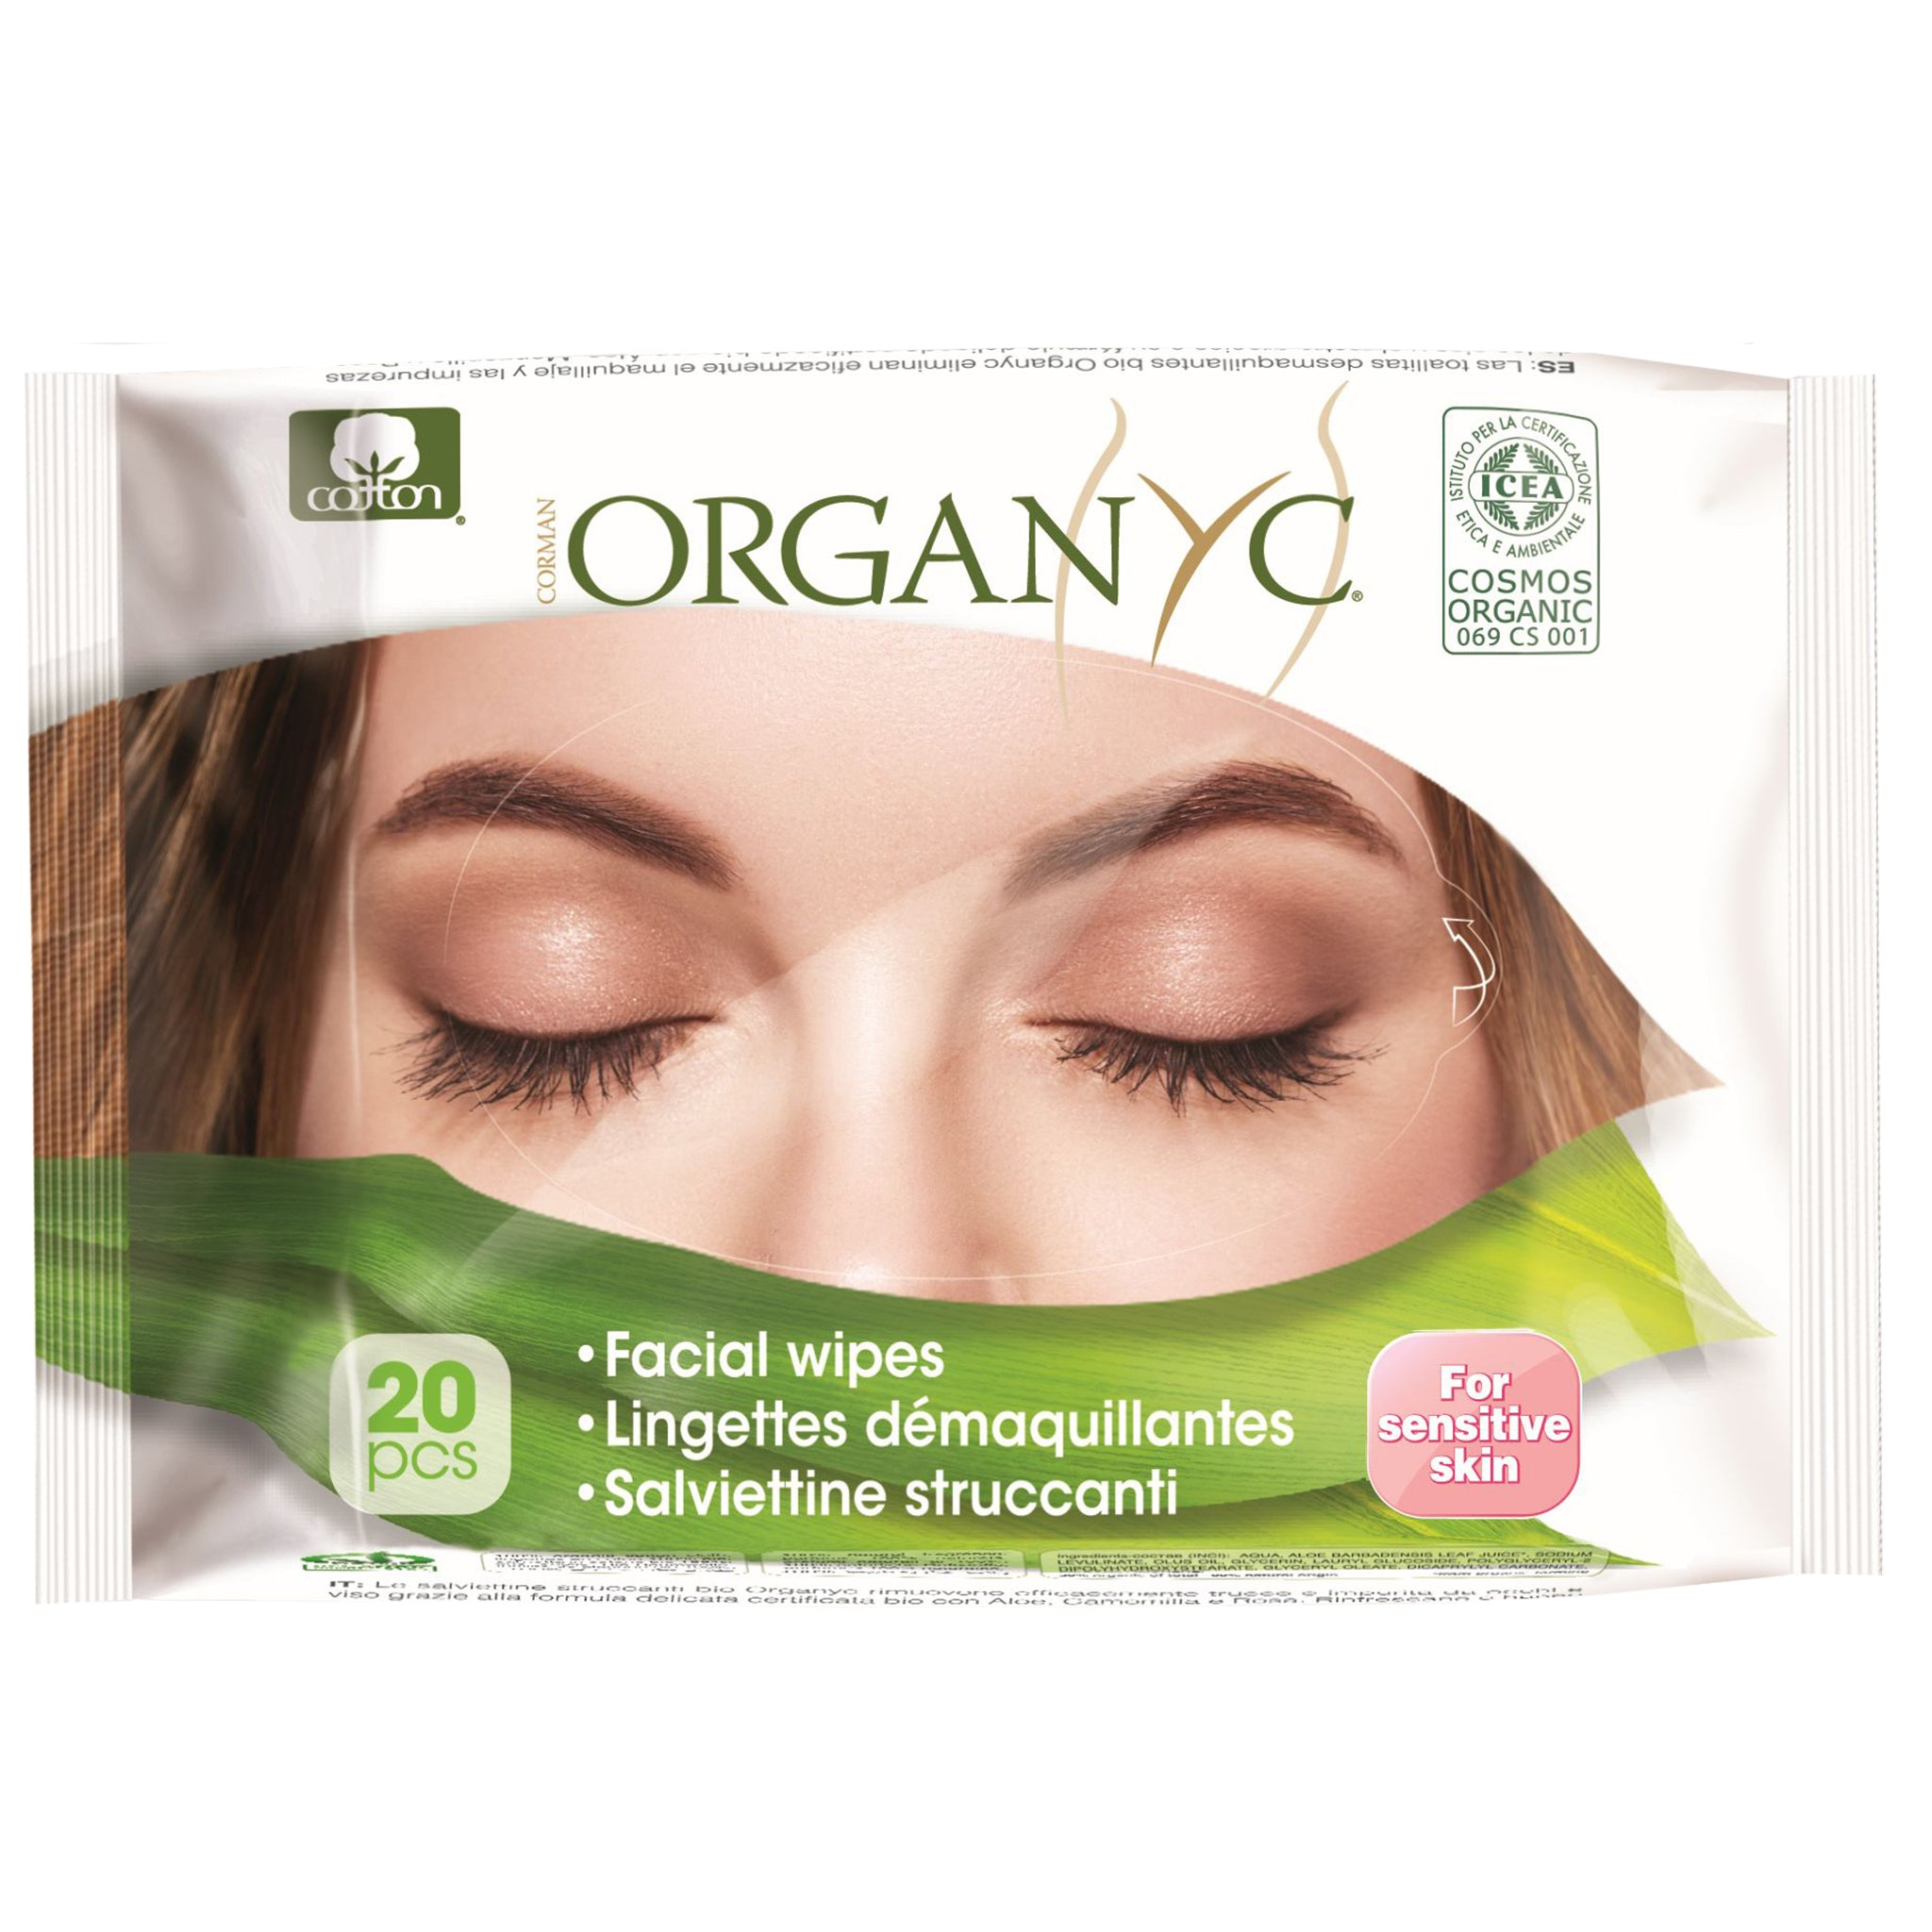 Organ(y)c Beauty Facial Wipes